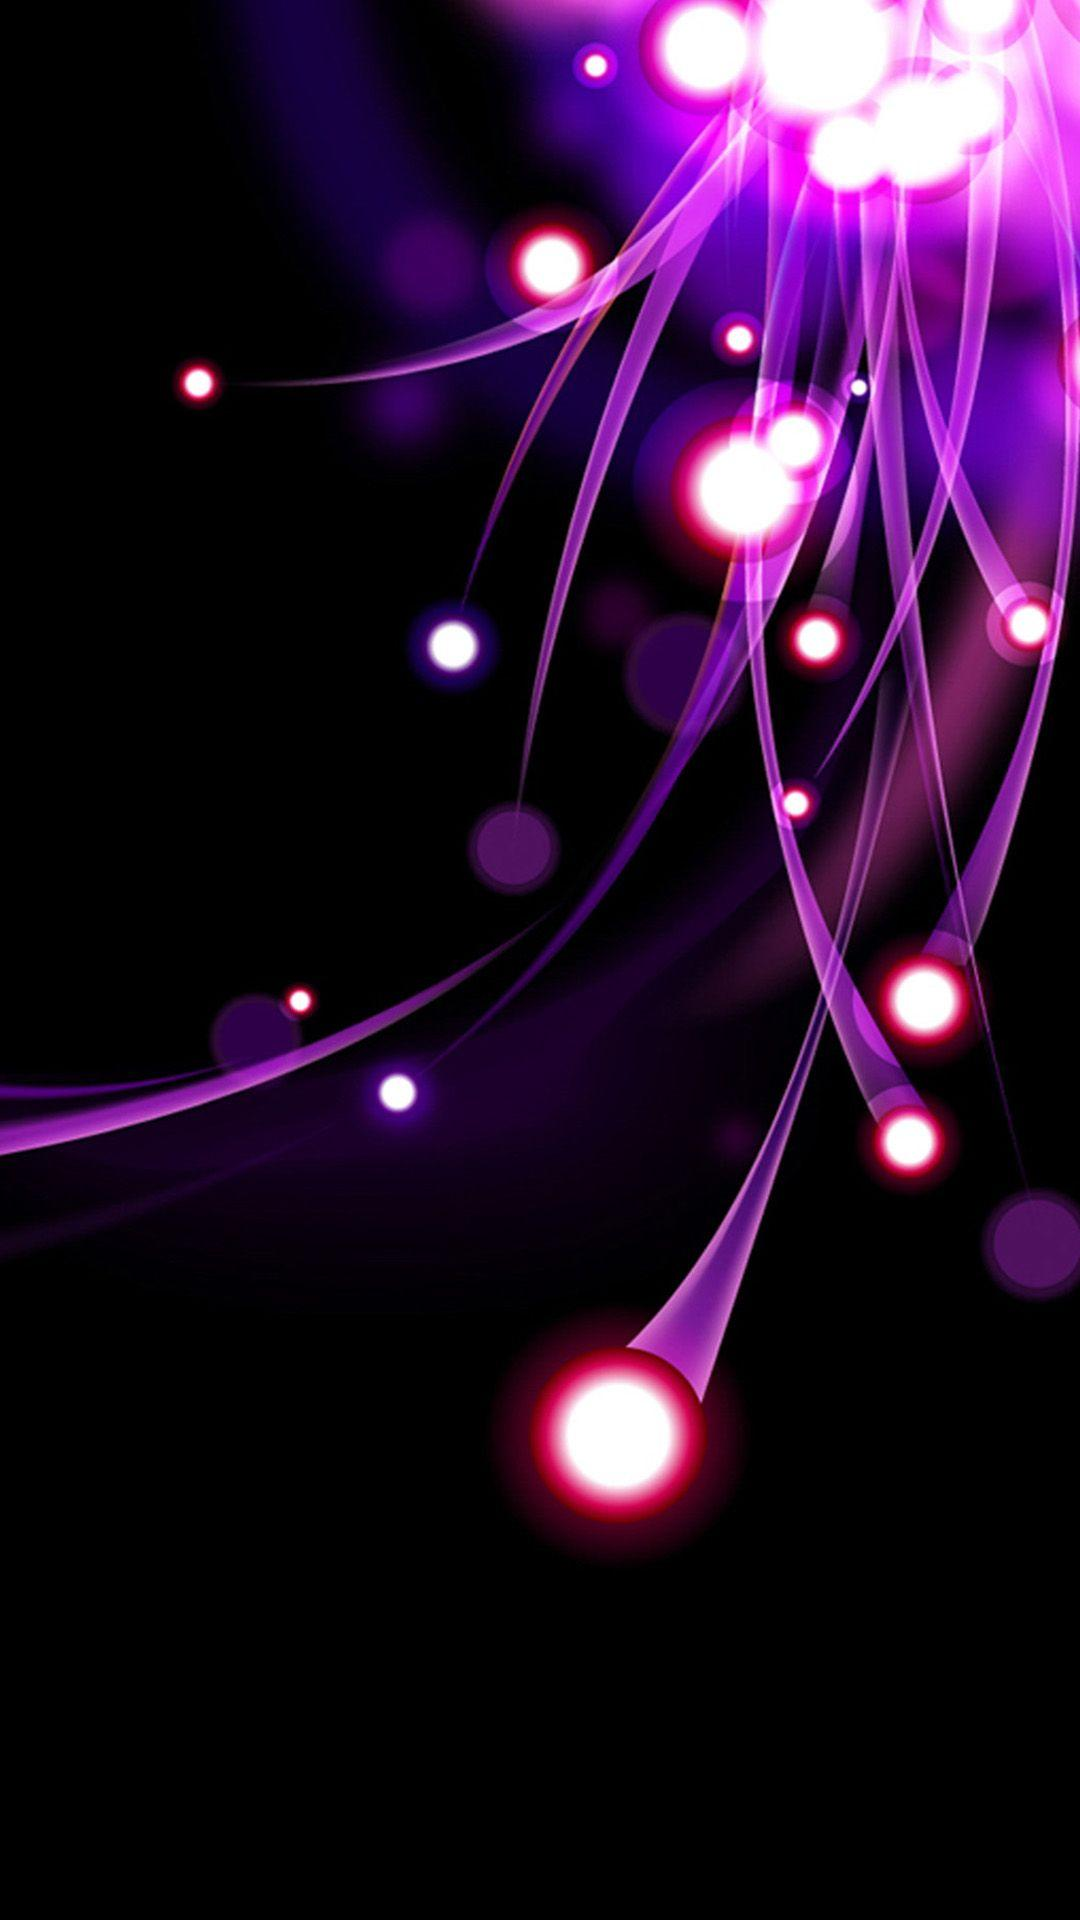 Colorful | Xperia Z2 Wallpaper